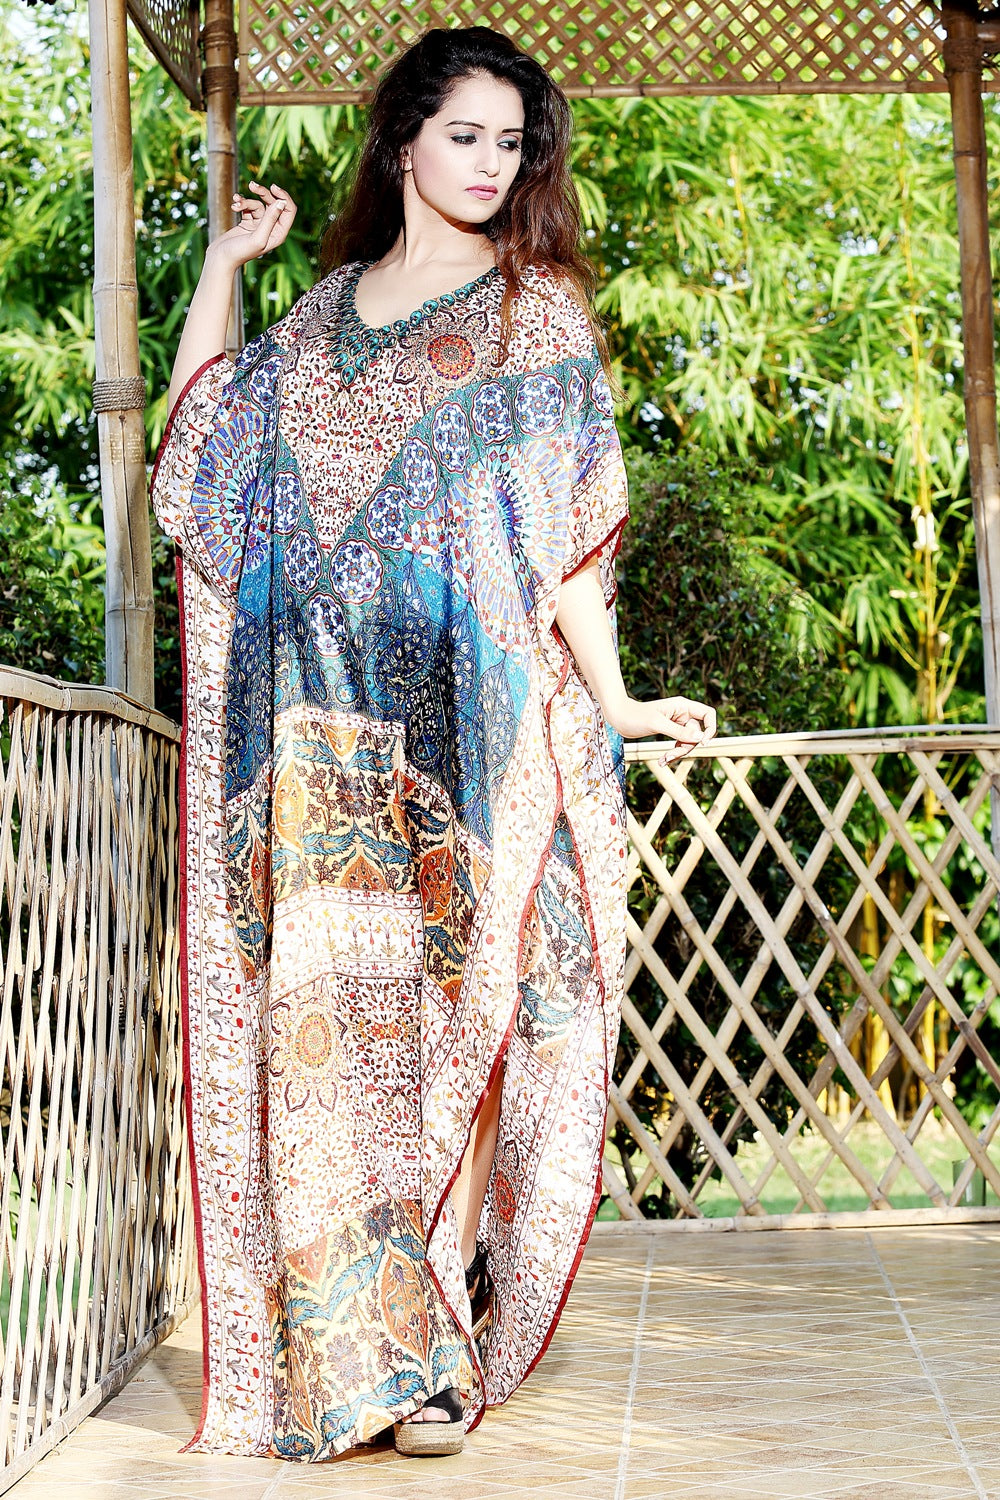 Kalamkari Pattern Silk Kaftan Cover-up Dress with Intricate Crystal Work near neck Cruise wear kaftan - Silk kaftan